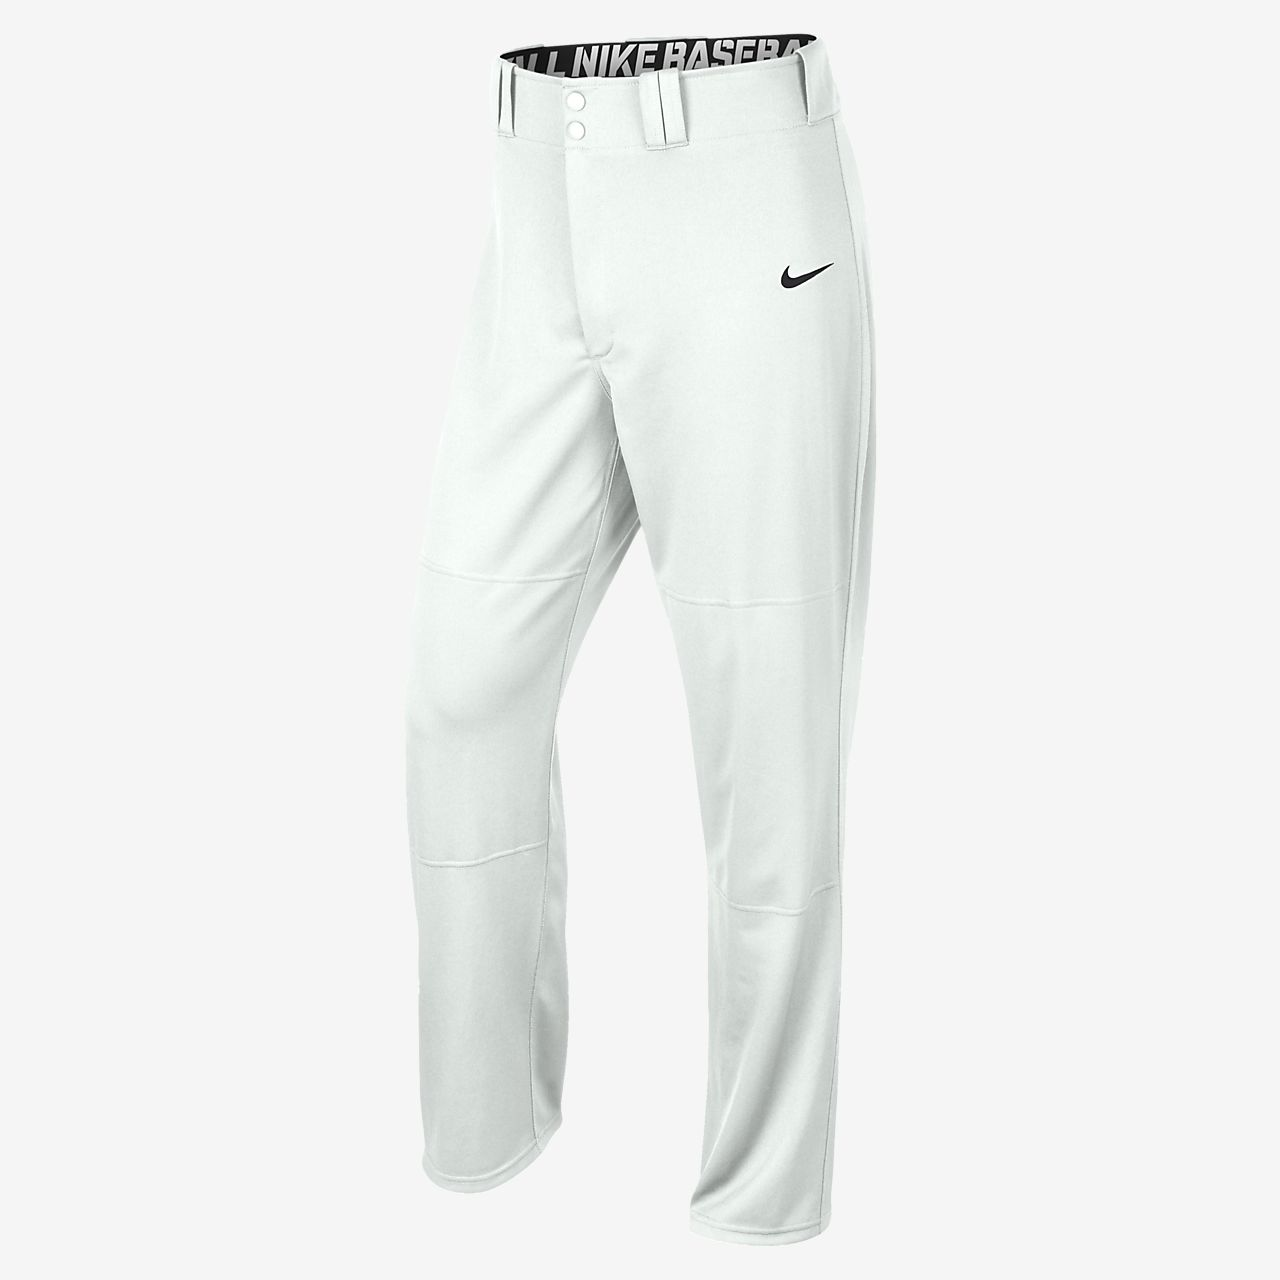 Low Resolution Nike Longball Men's Baseball Pants Nike Longball Men's  Baseball Pants